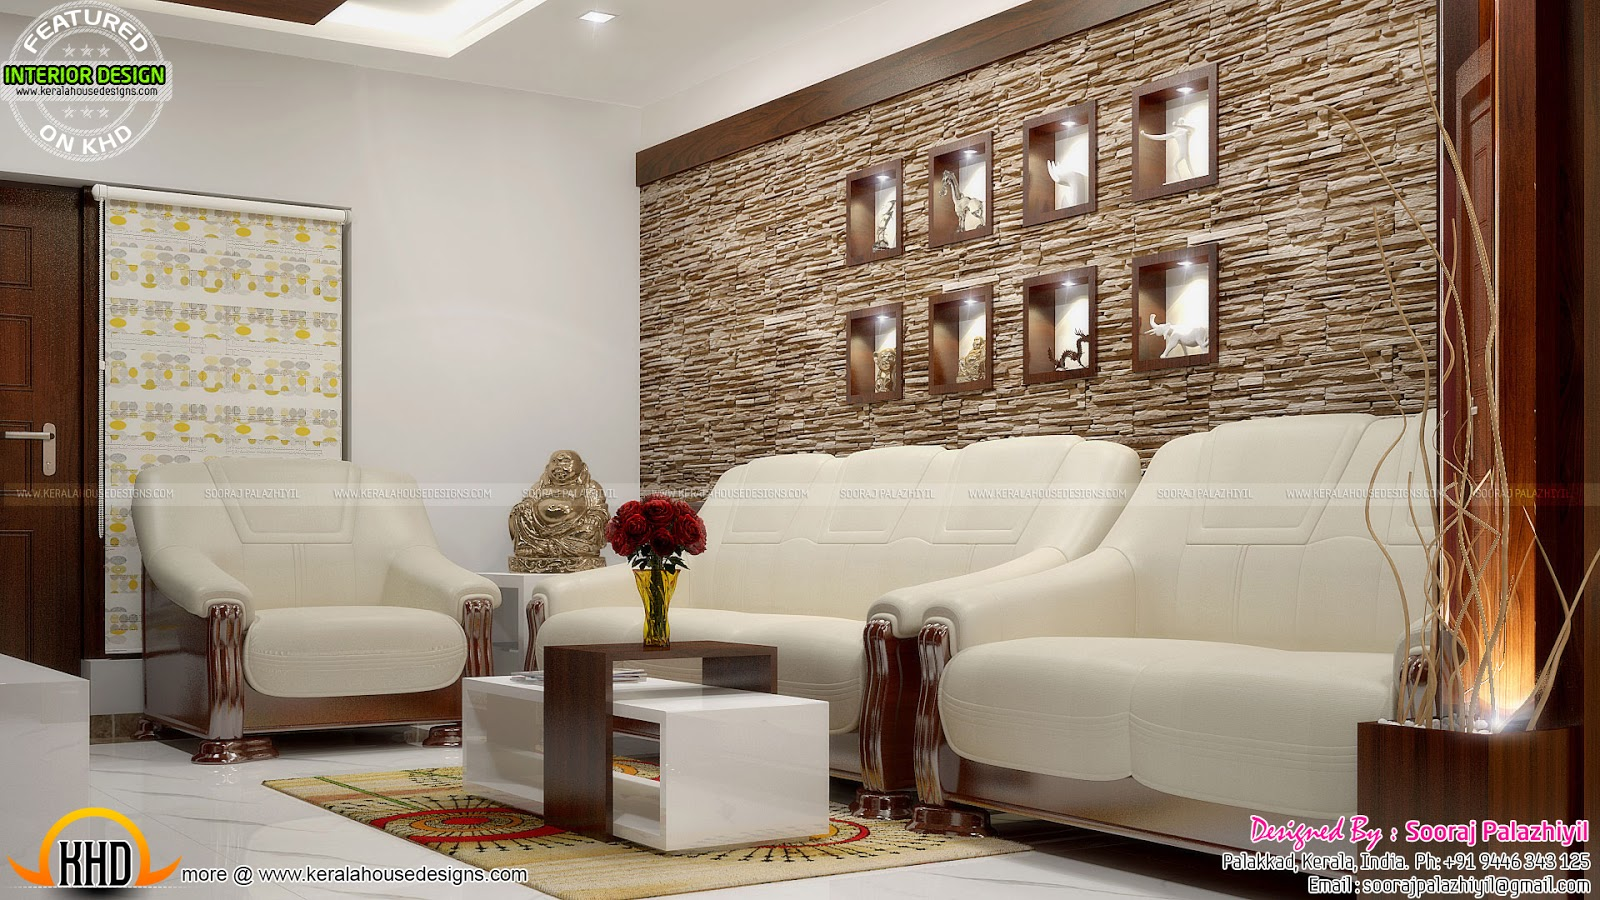 Interior Design For Apartments In Kerala Simple